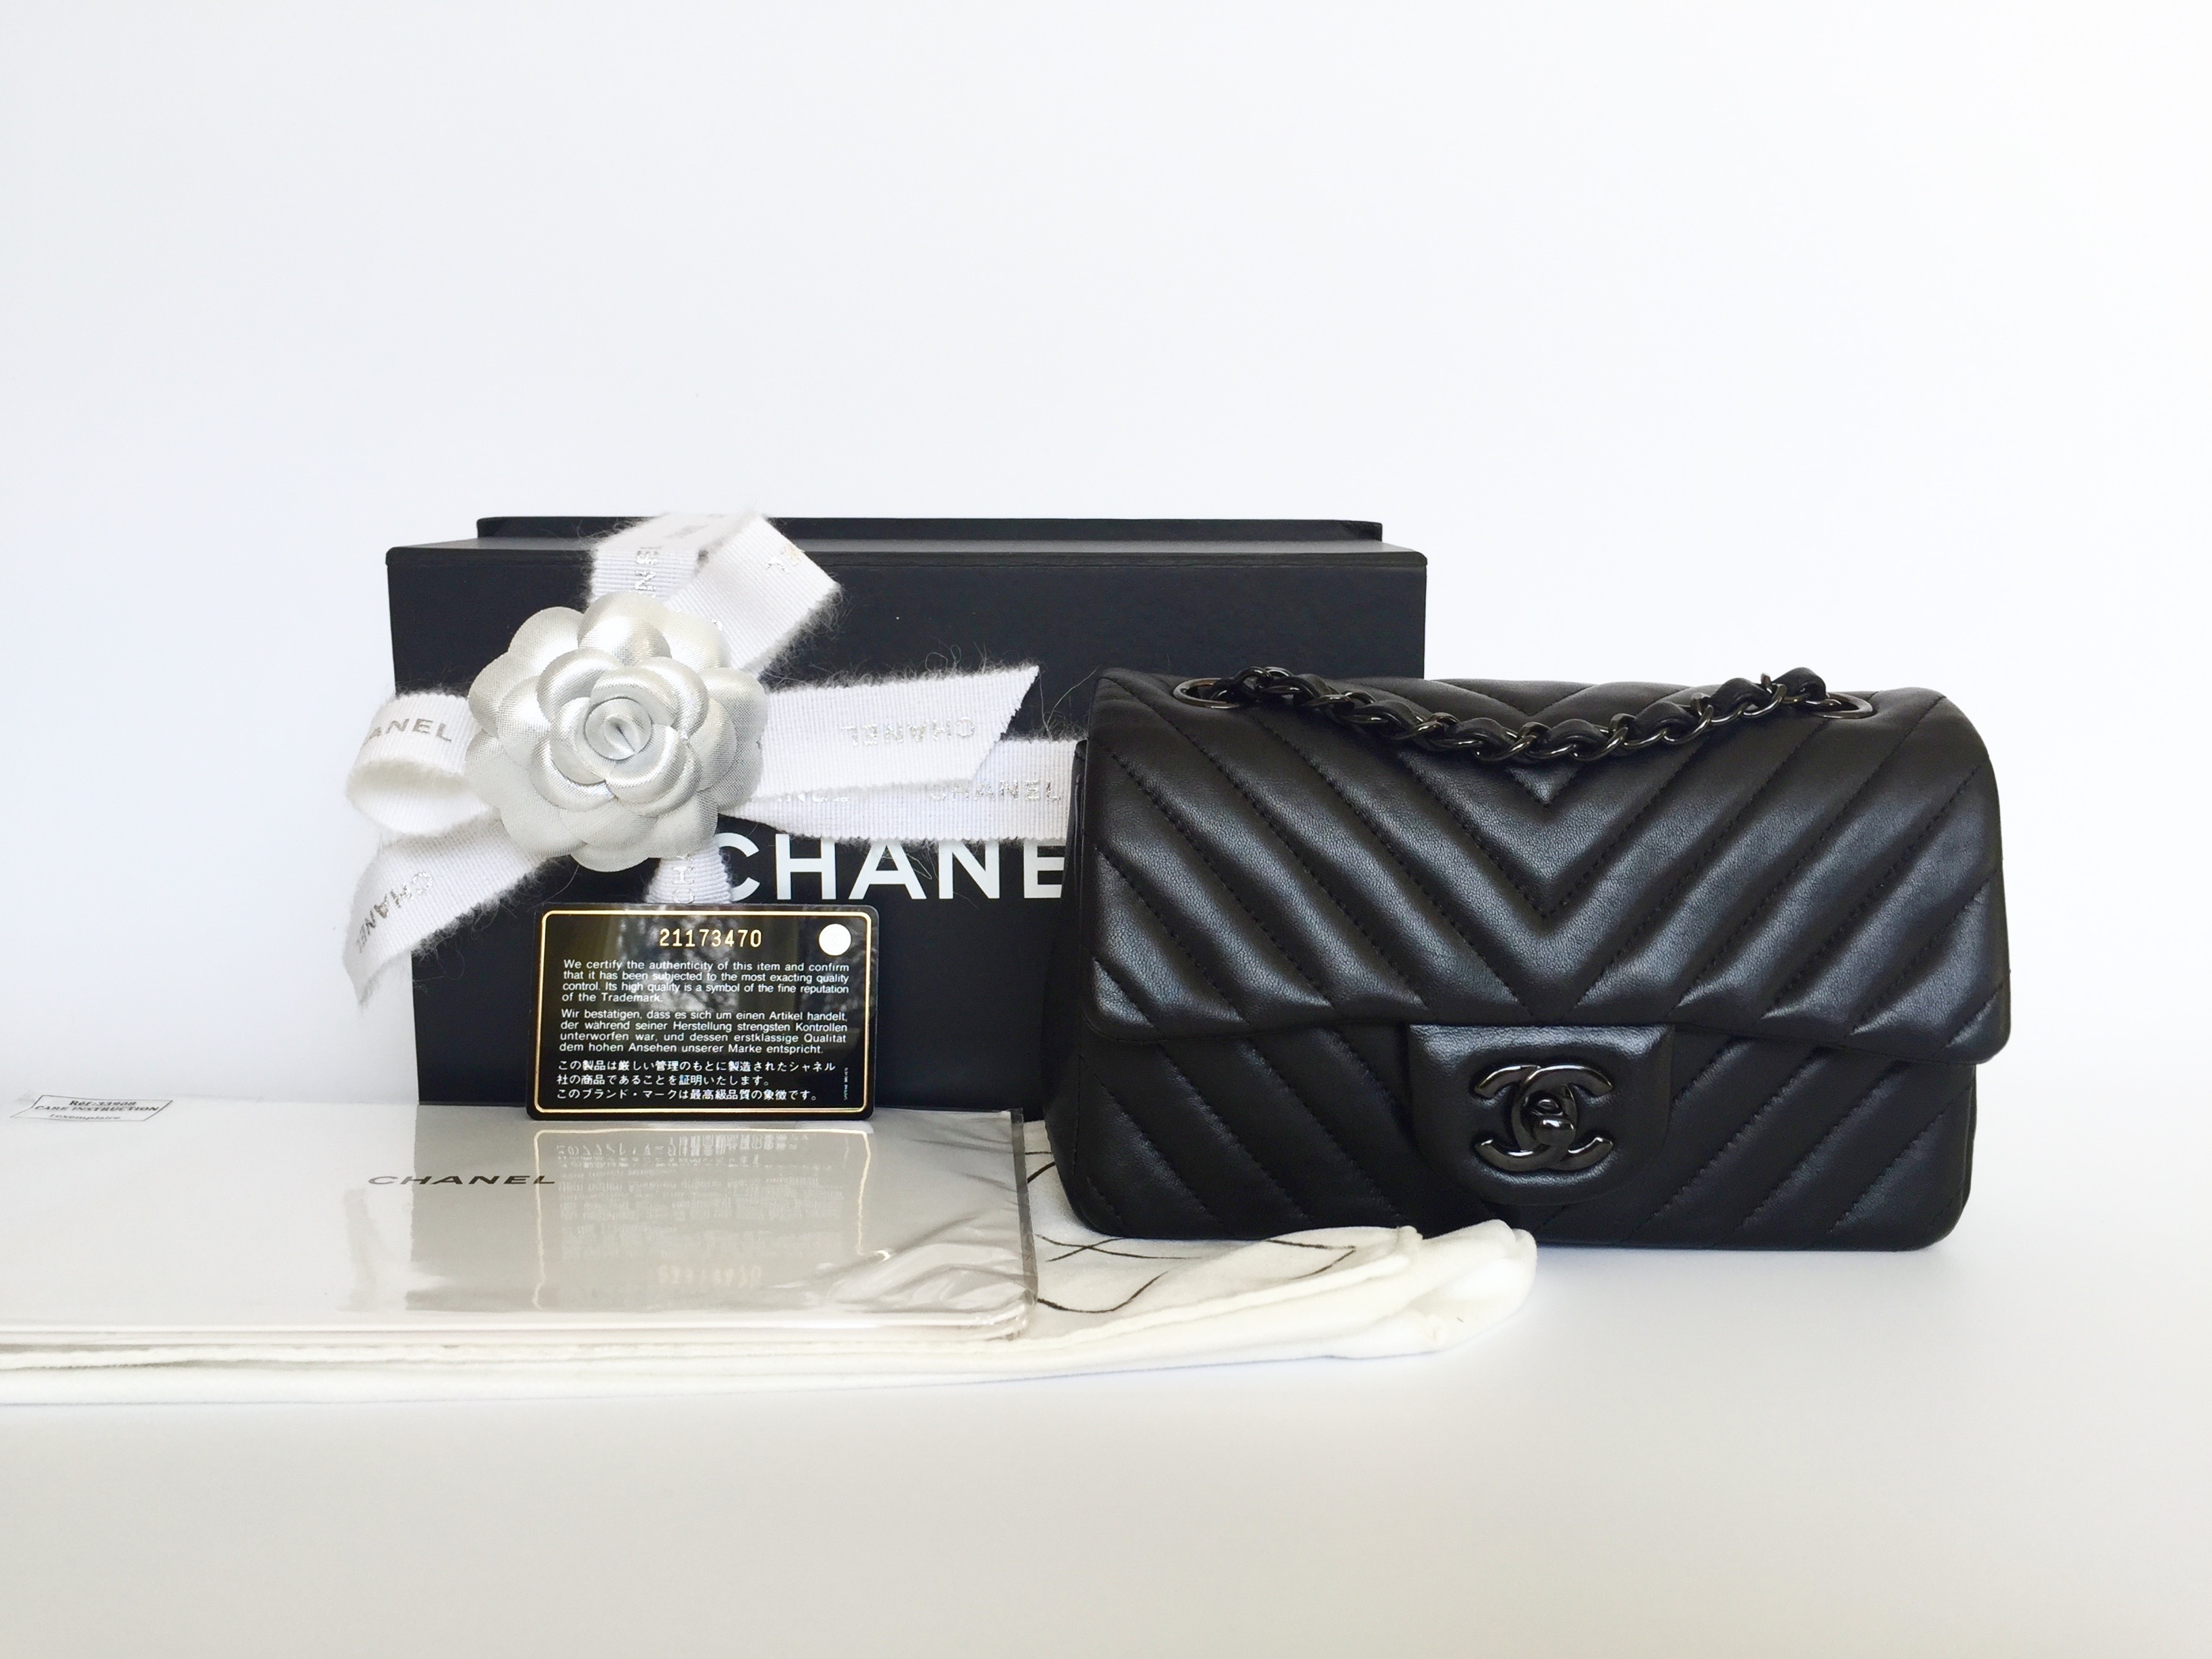 8217b5e80288 Home/Chanel/CHANEL Rectangular Mini So Black Chevron Lambskin Black  Hardware 2015. ; 